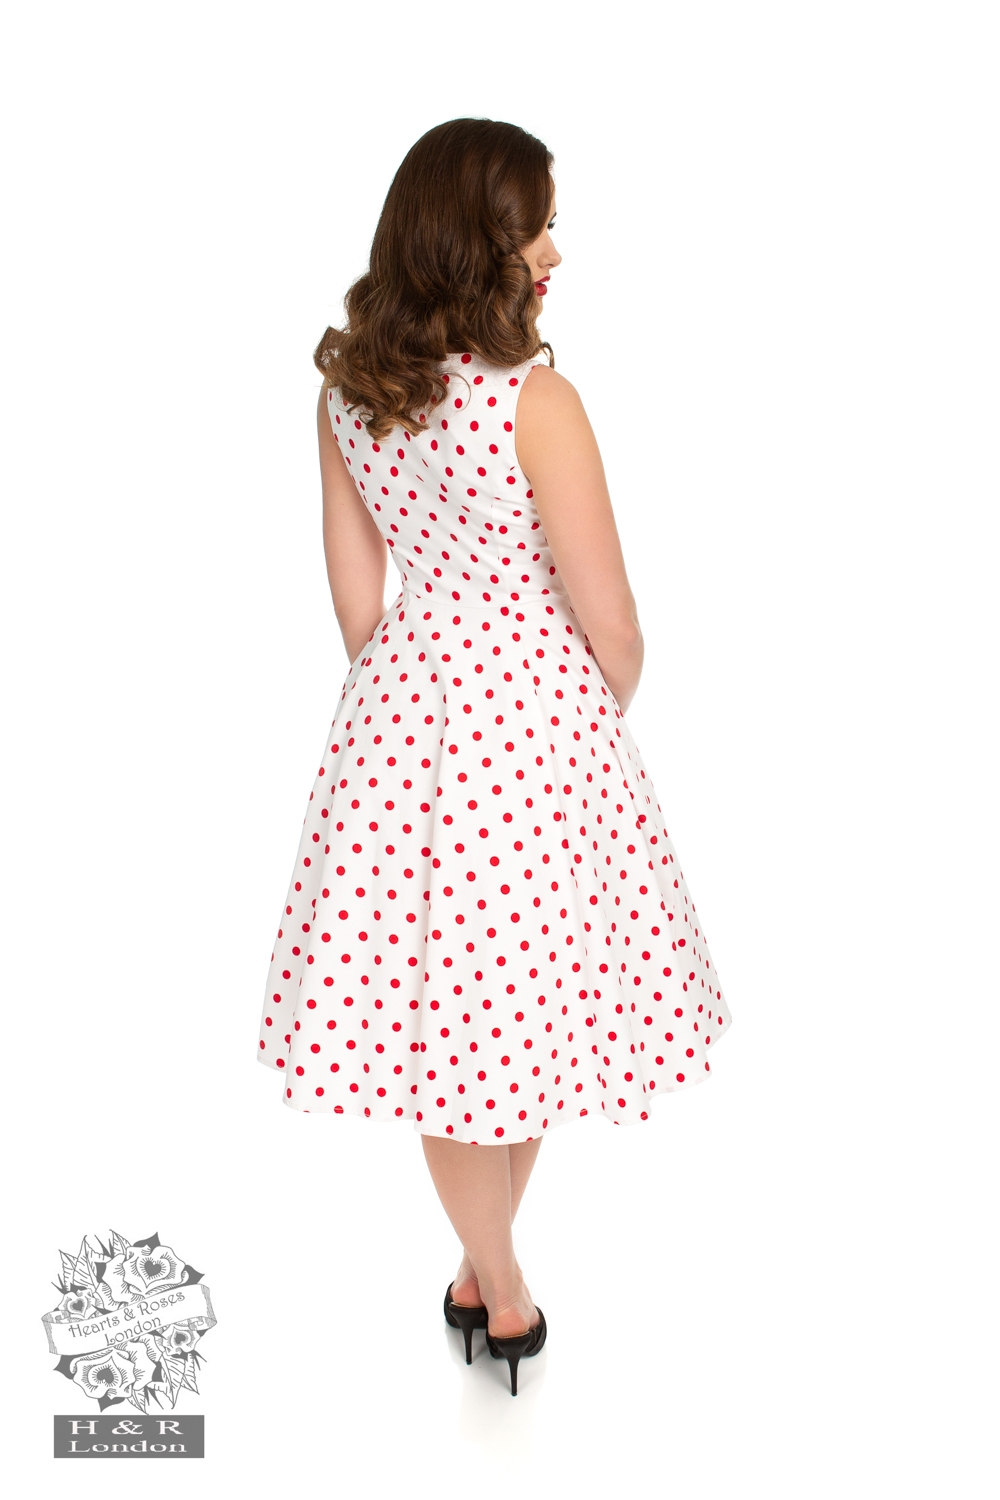 Heart&Roses  Cindy prickig dress  flera färger stl 2XL-6XL